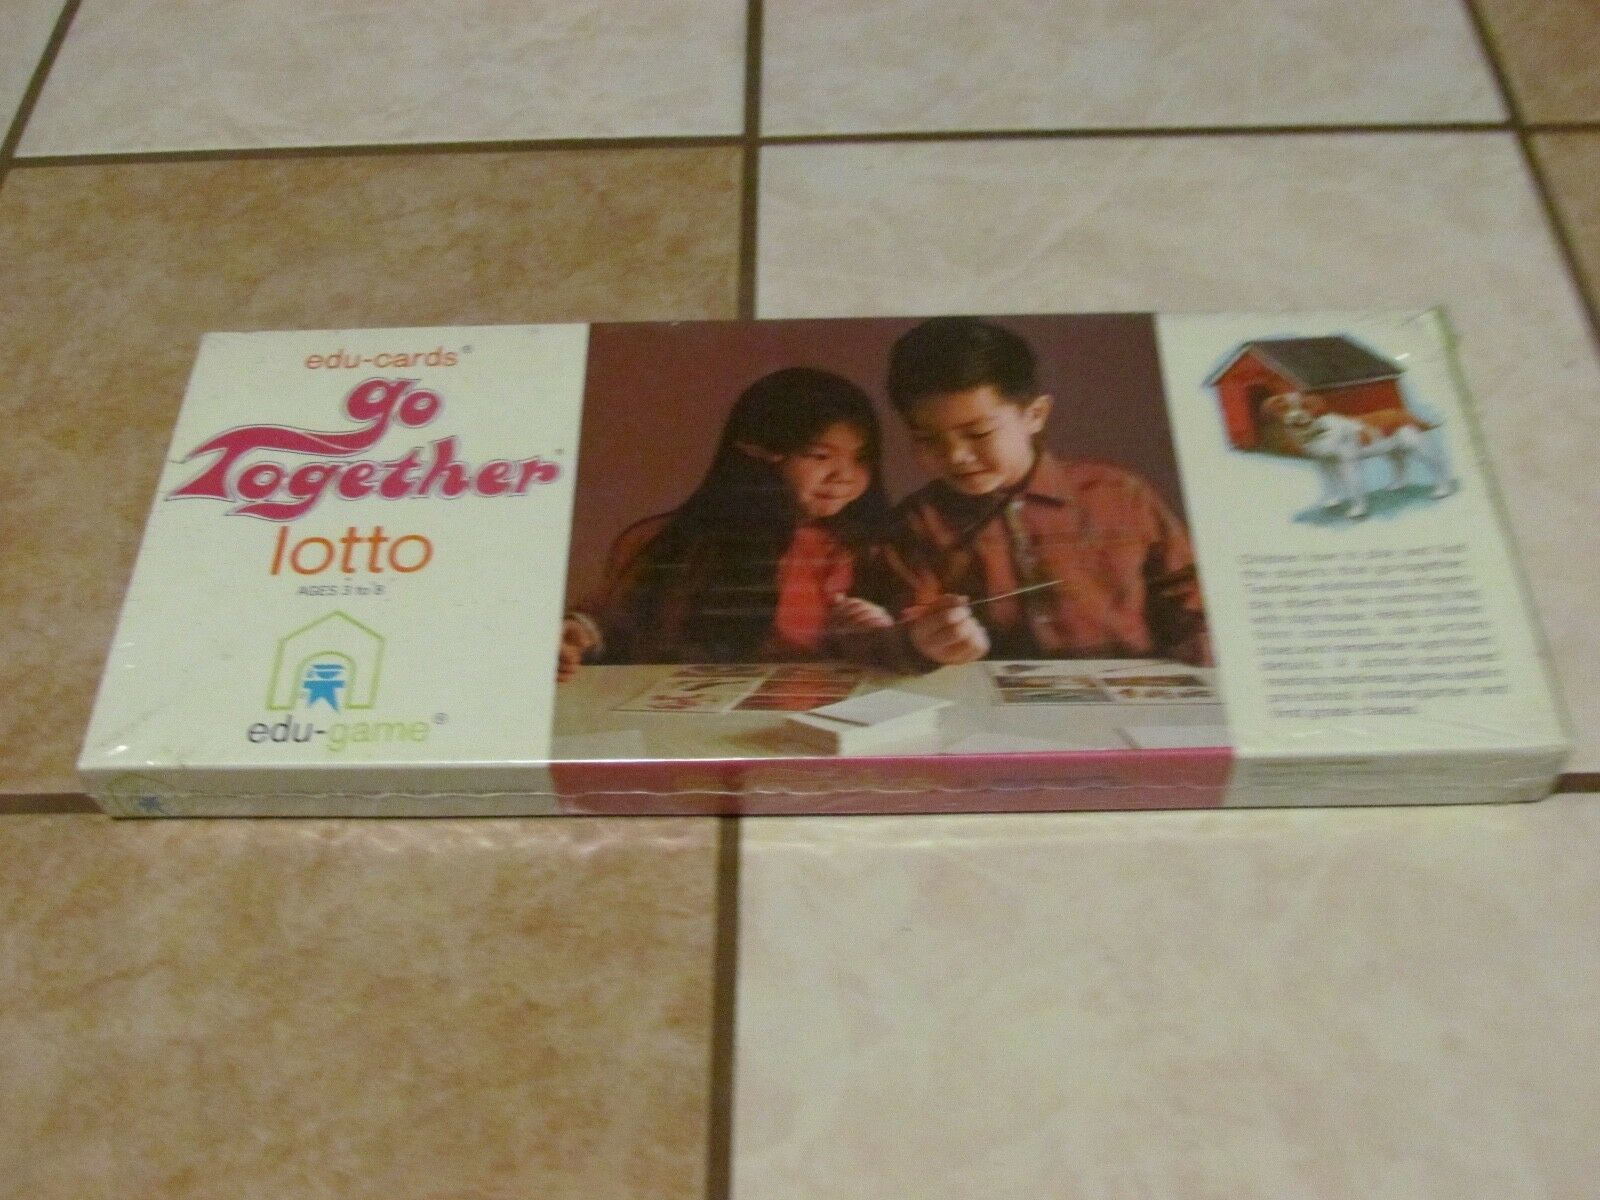 NEW SEALED EDU-CARDS GO TOGETHER LOTTO 1970 EDU-GAME RARE VINTAGE LEARNING